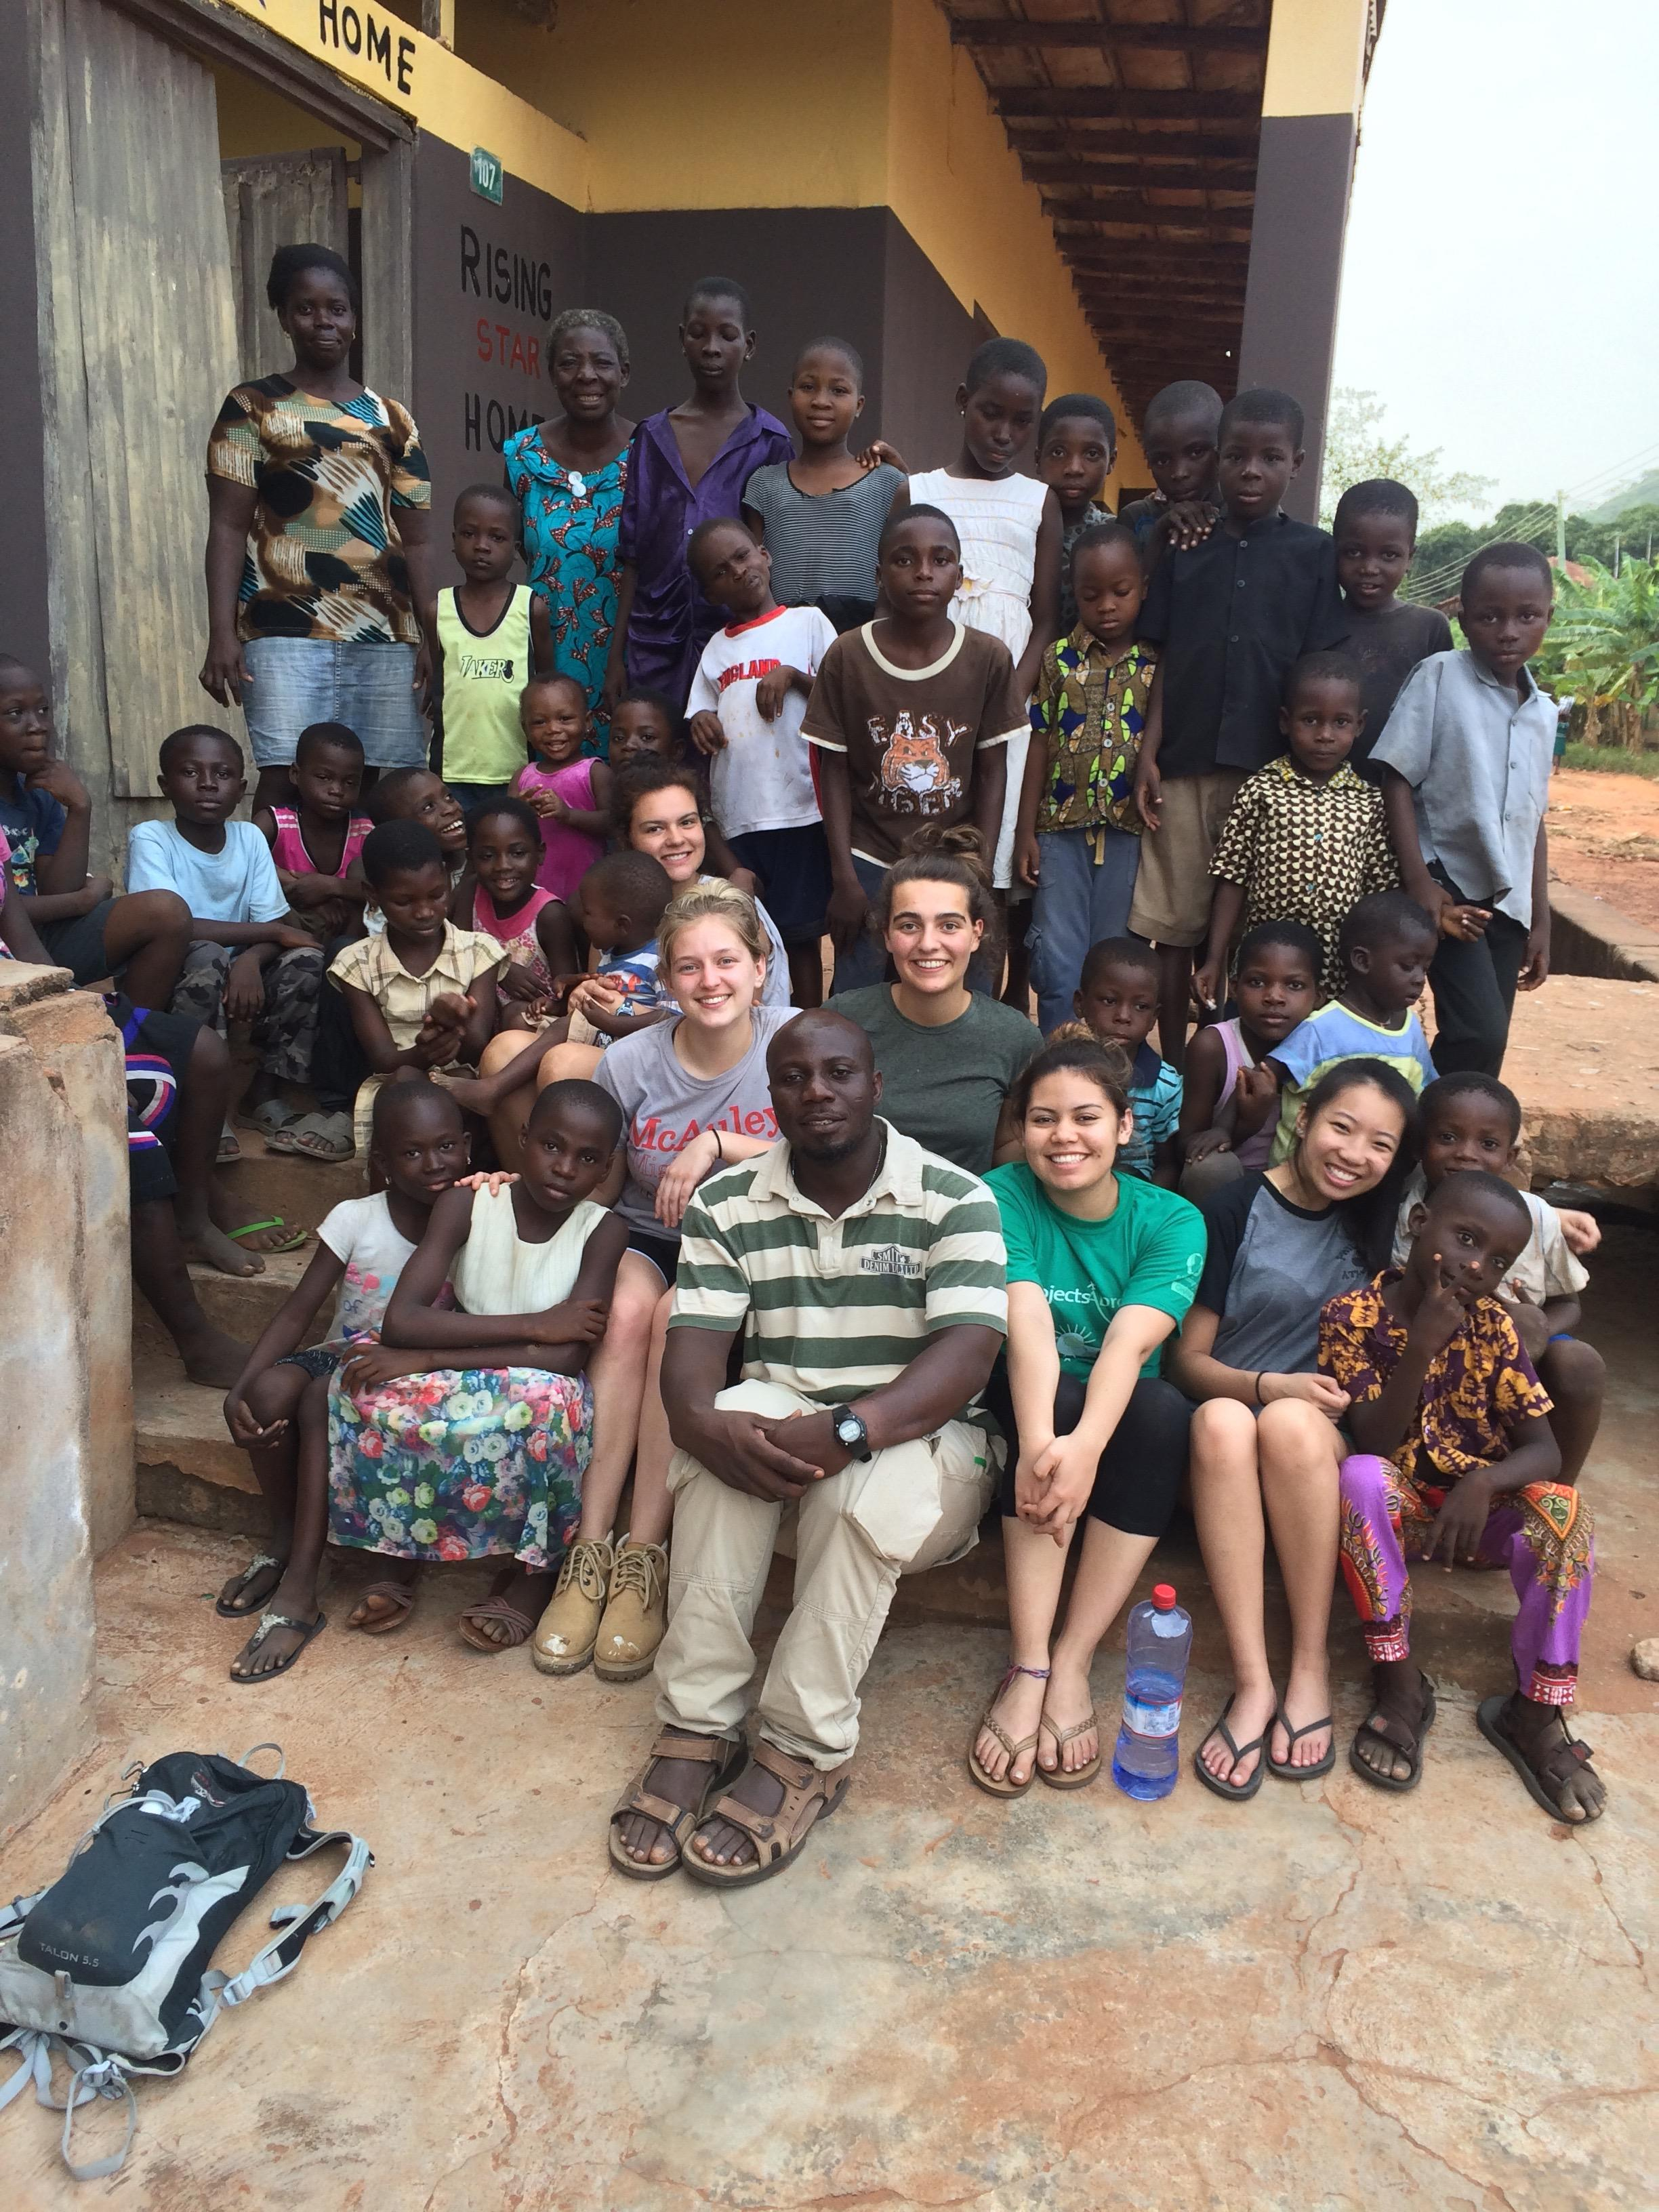 Volunteers posing for a photograph with some Ghanaian locals